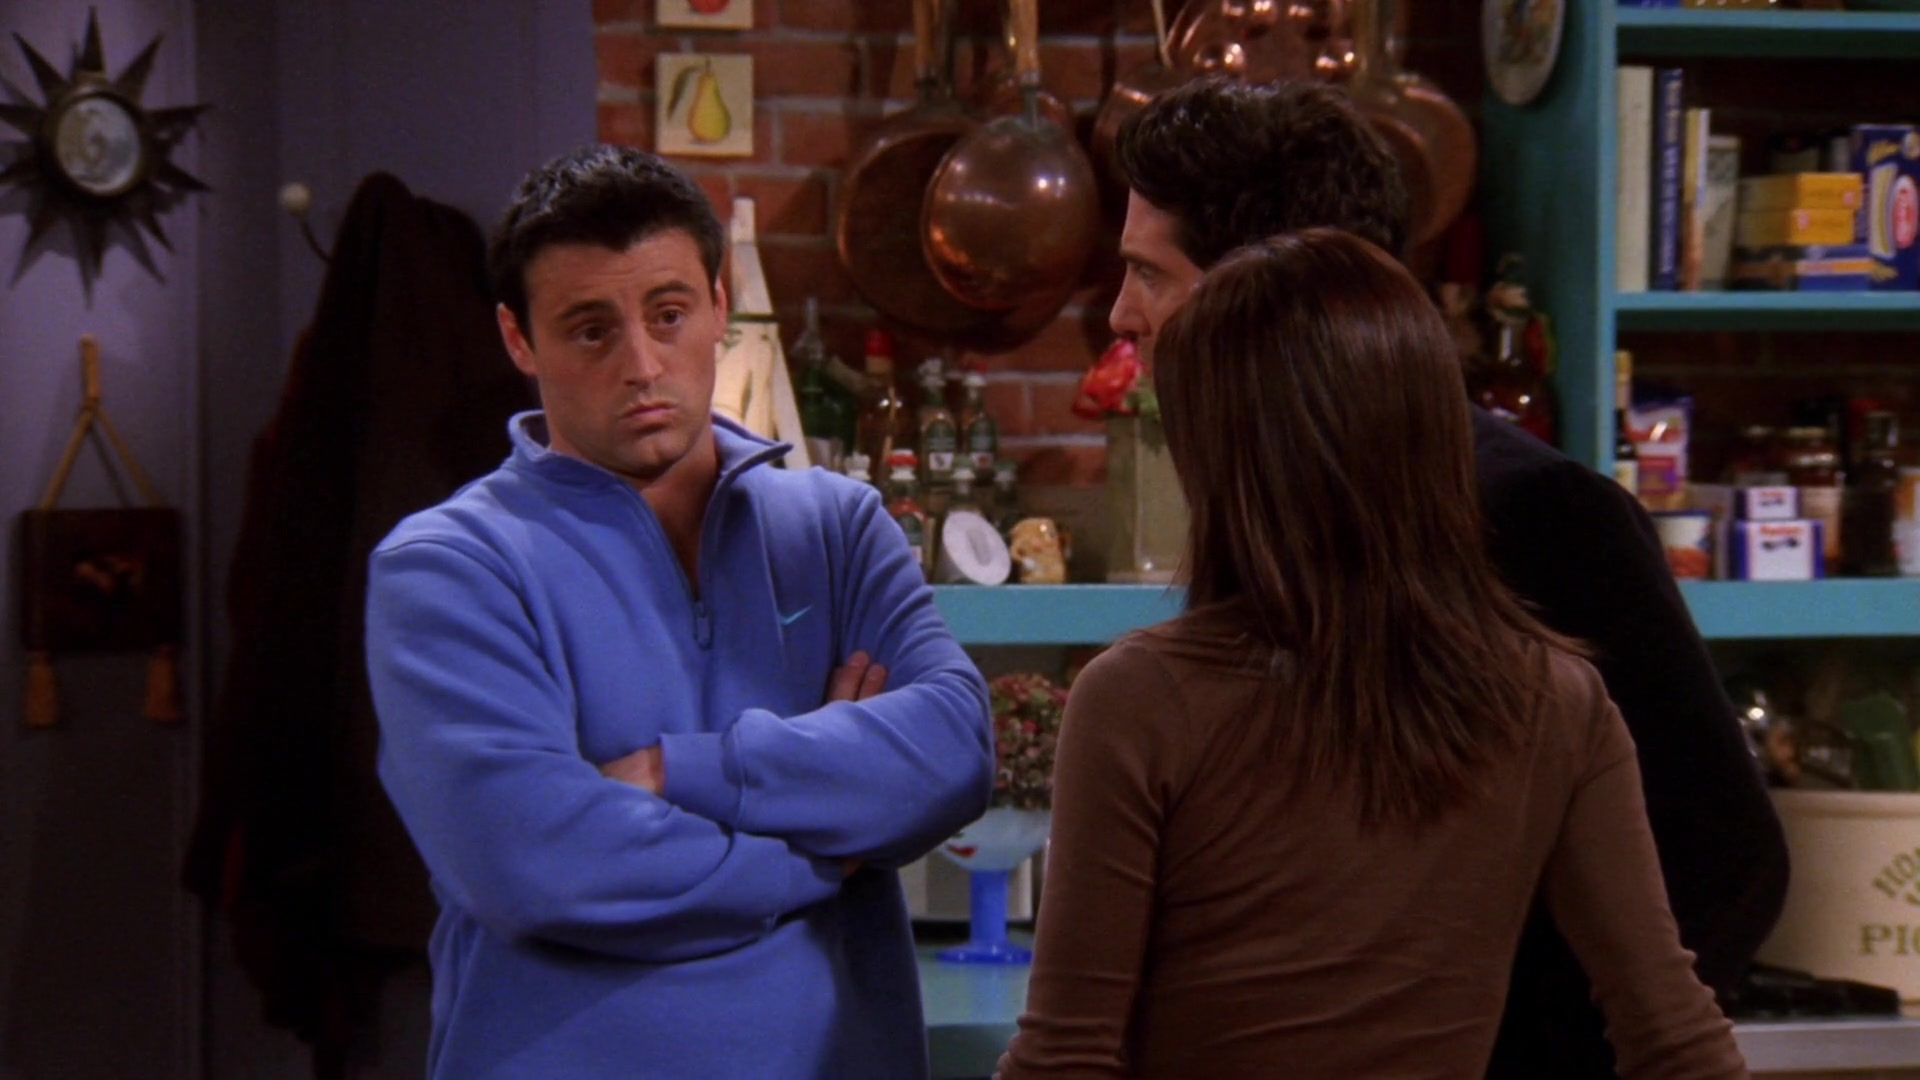 Nike Blue Sweatshirt Worn by Matt LeBlanc (Joey Tribbiani